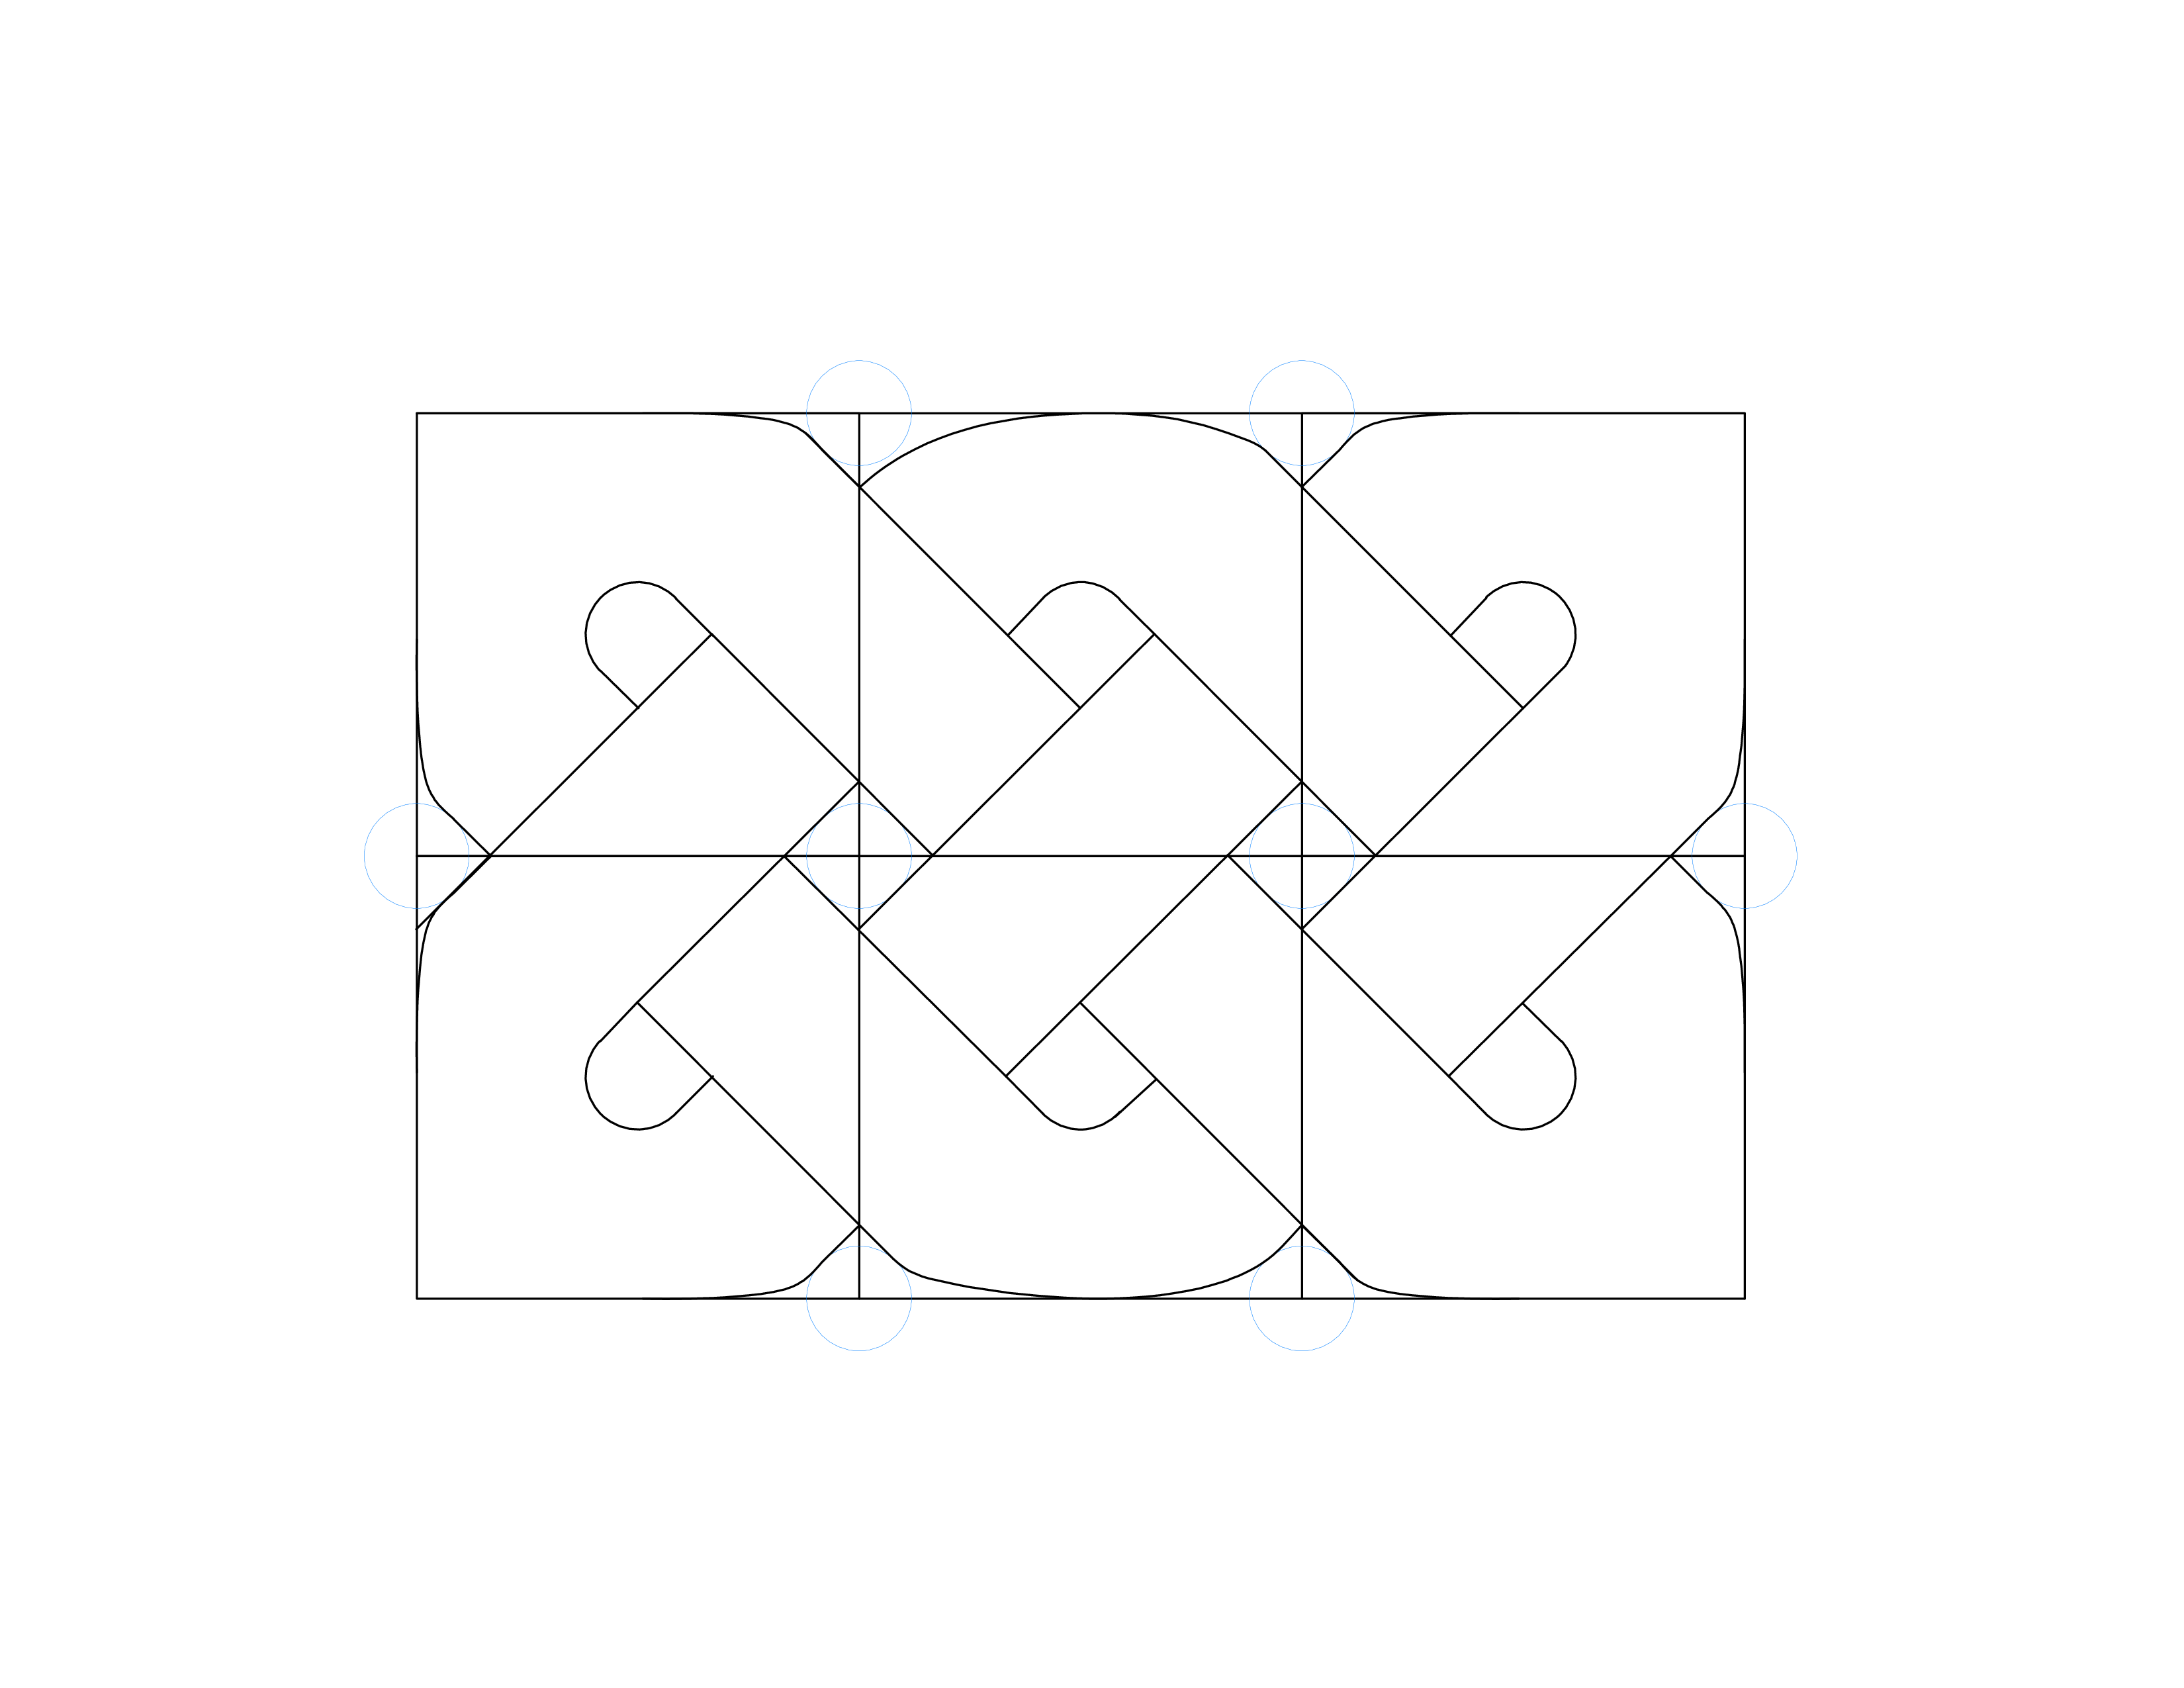 3300x2550 How To Draw A Simple Celtic Knot